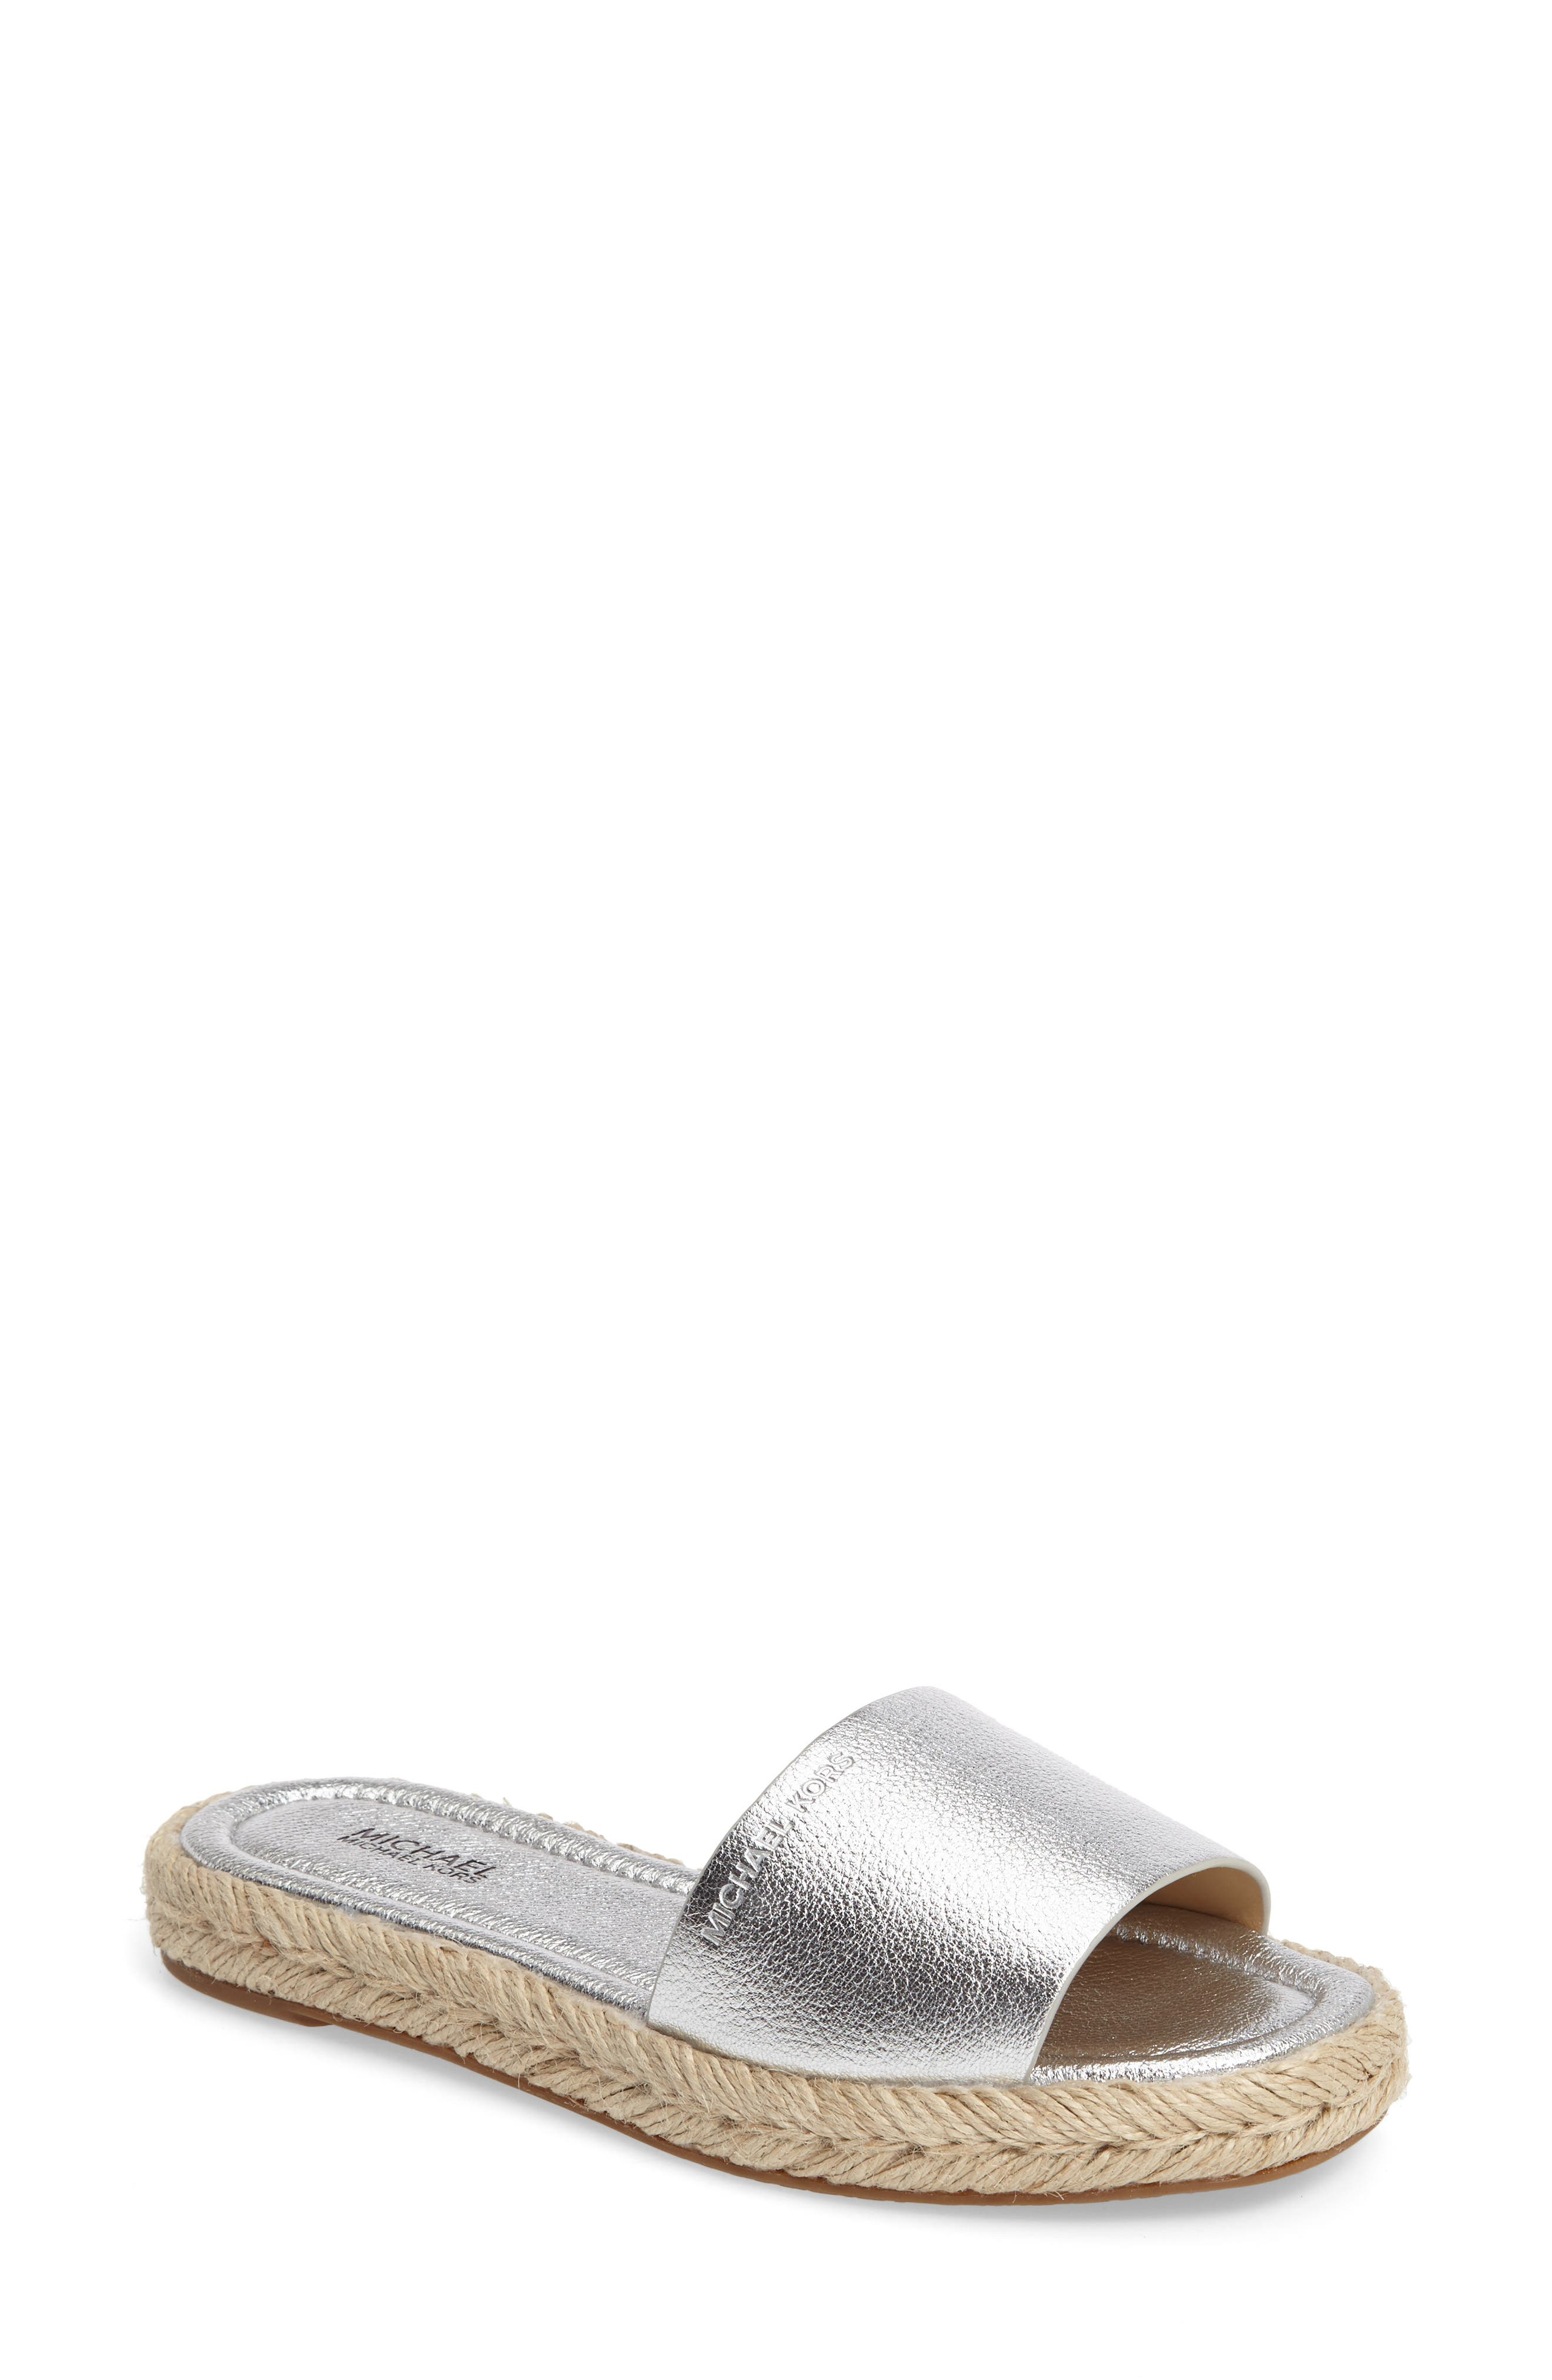 Alternate Image 1 Selected - MICHAEL Michael Kors Dempsey Slide Sandal (Women)